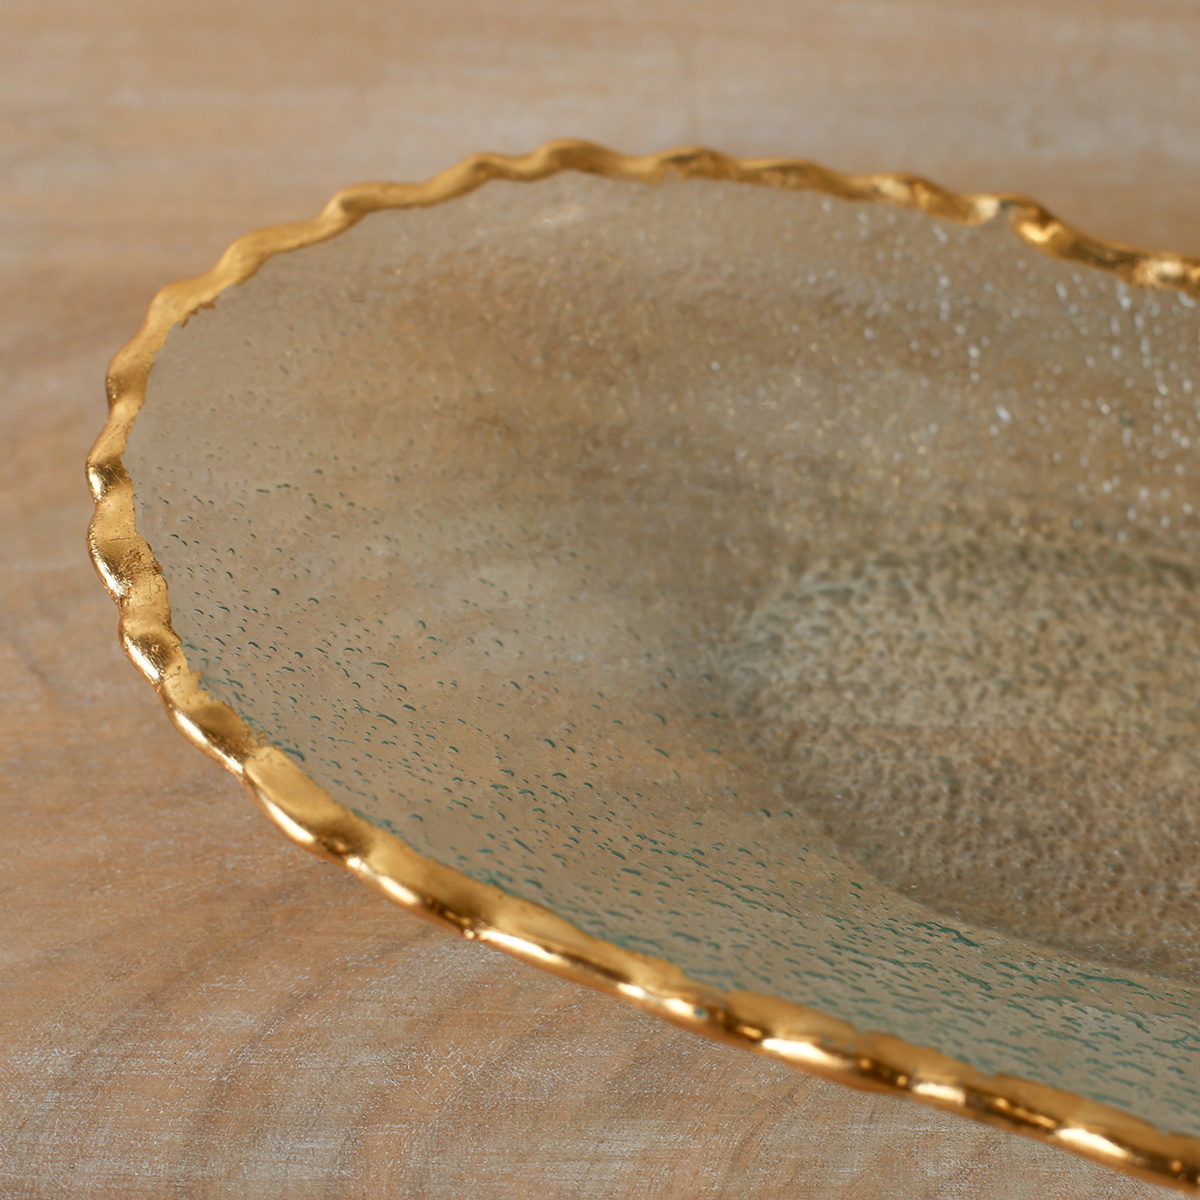 Oval Gold Edge Serving Tray